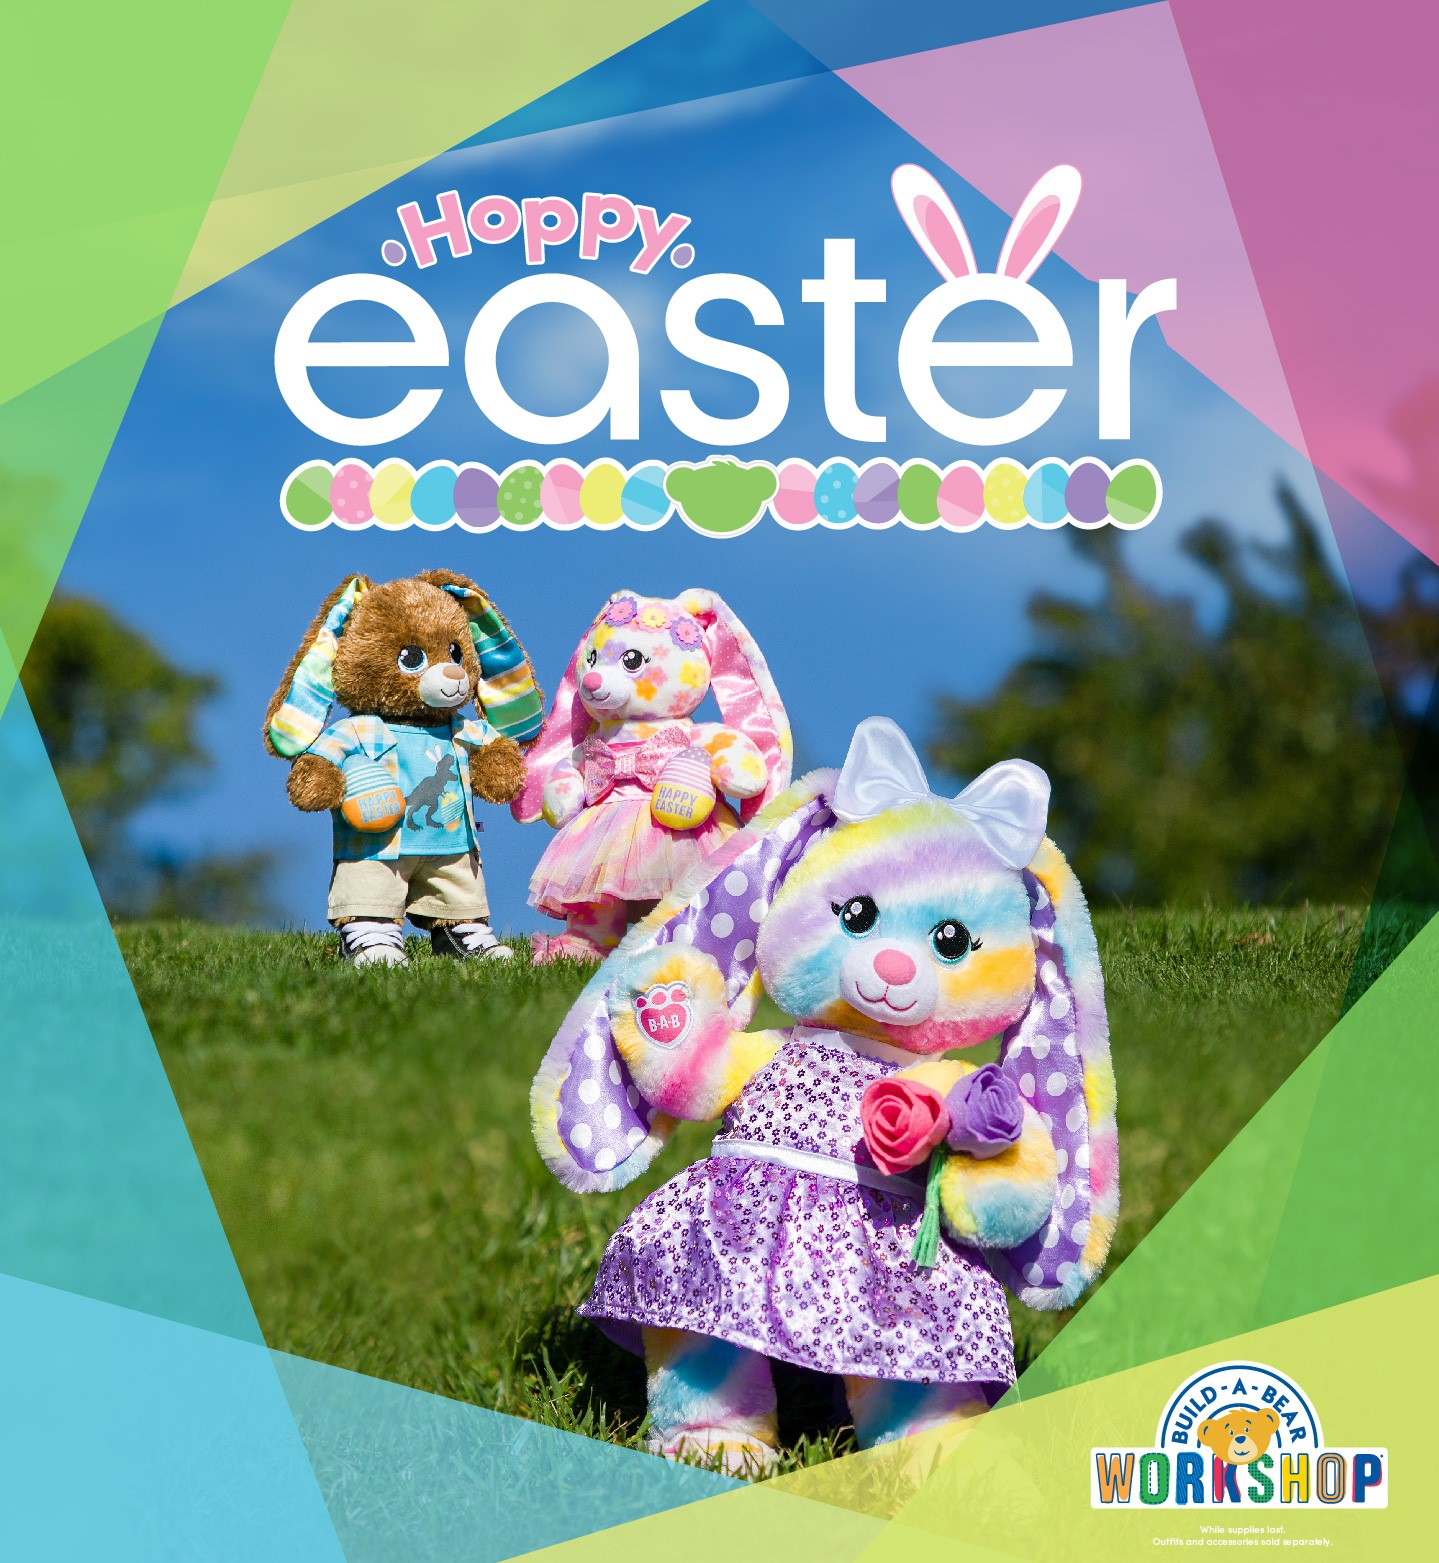 Three Hoppy Easter bunnies dressed up in Easter attire and colors.  Build A Bear Workshop Logo. While Supplies last. Outfits and accessories sold separately.